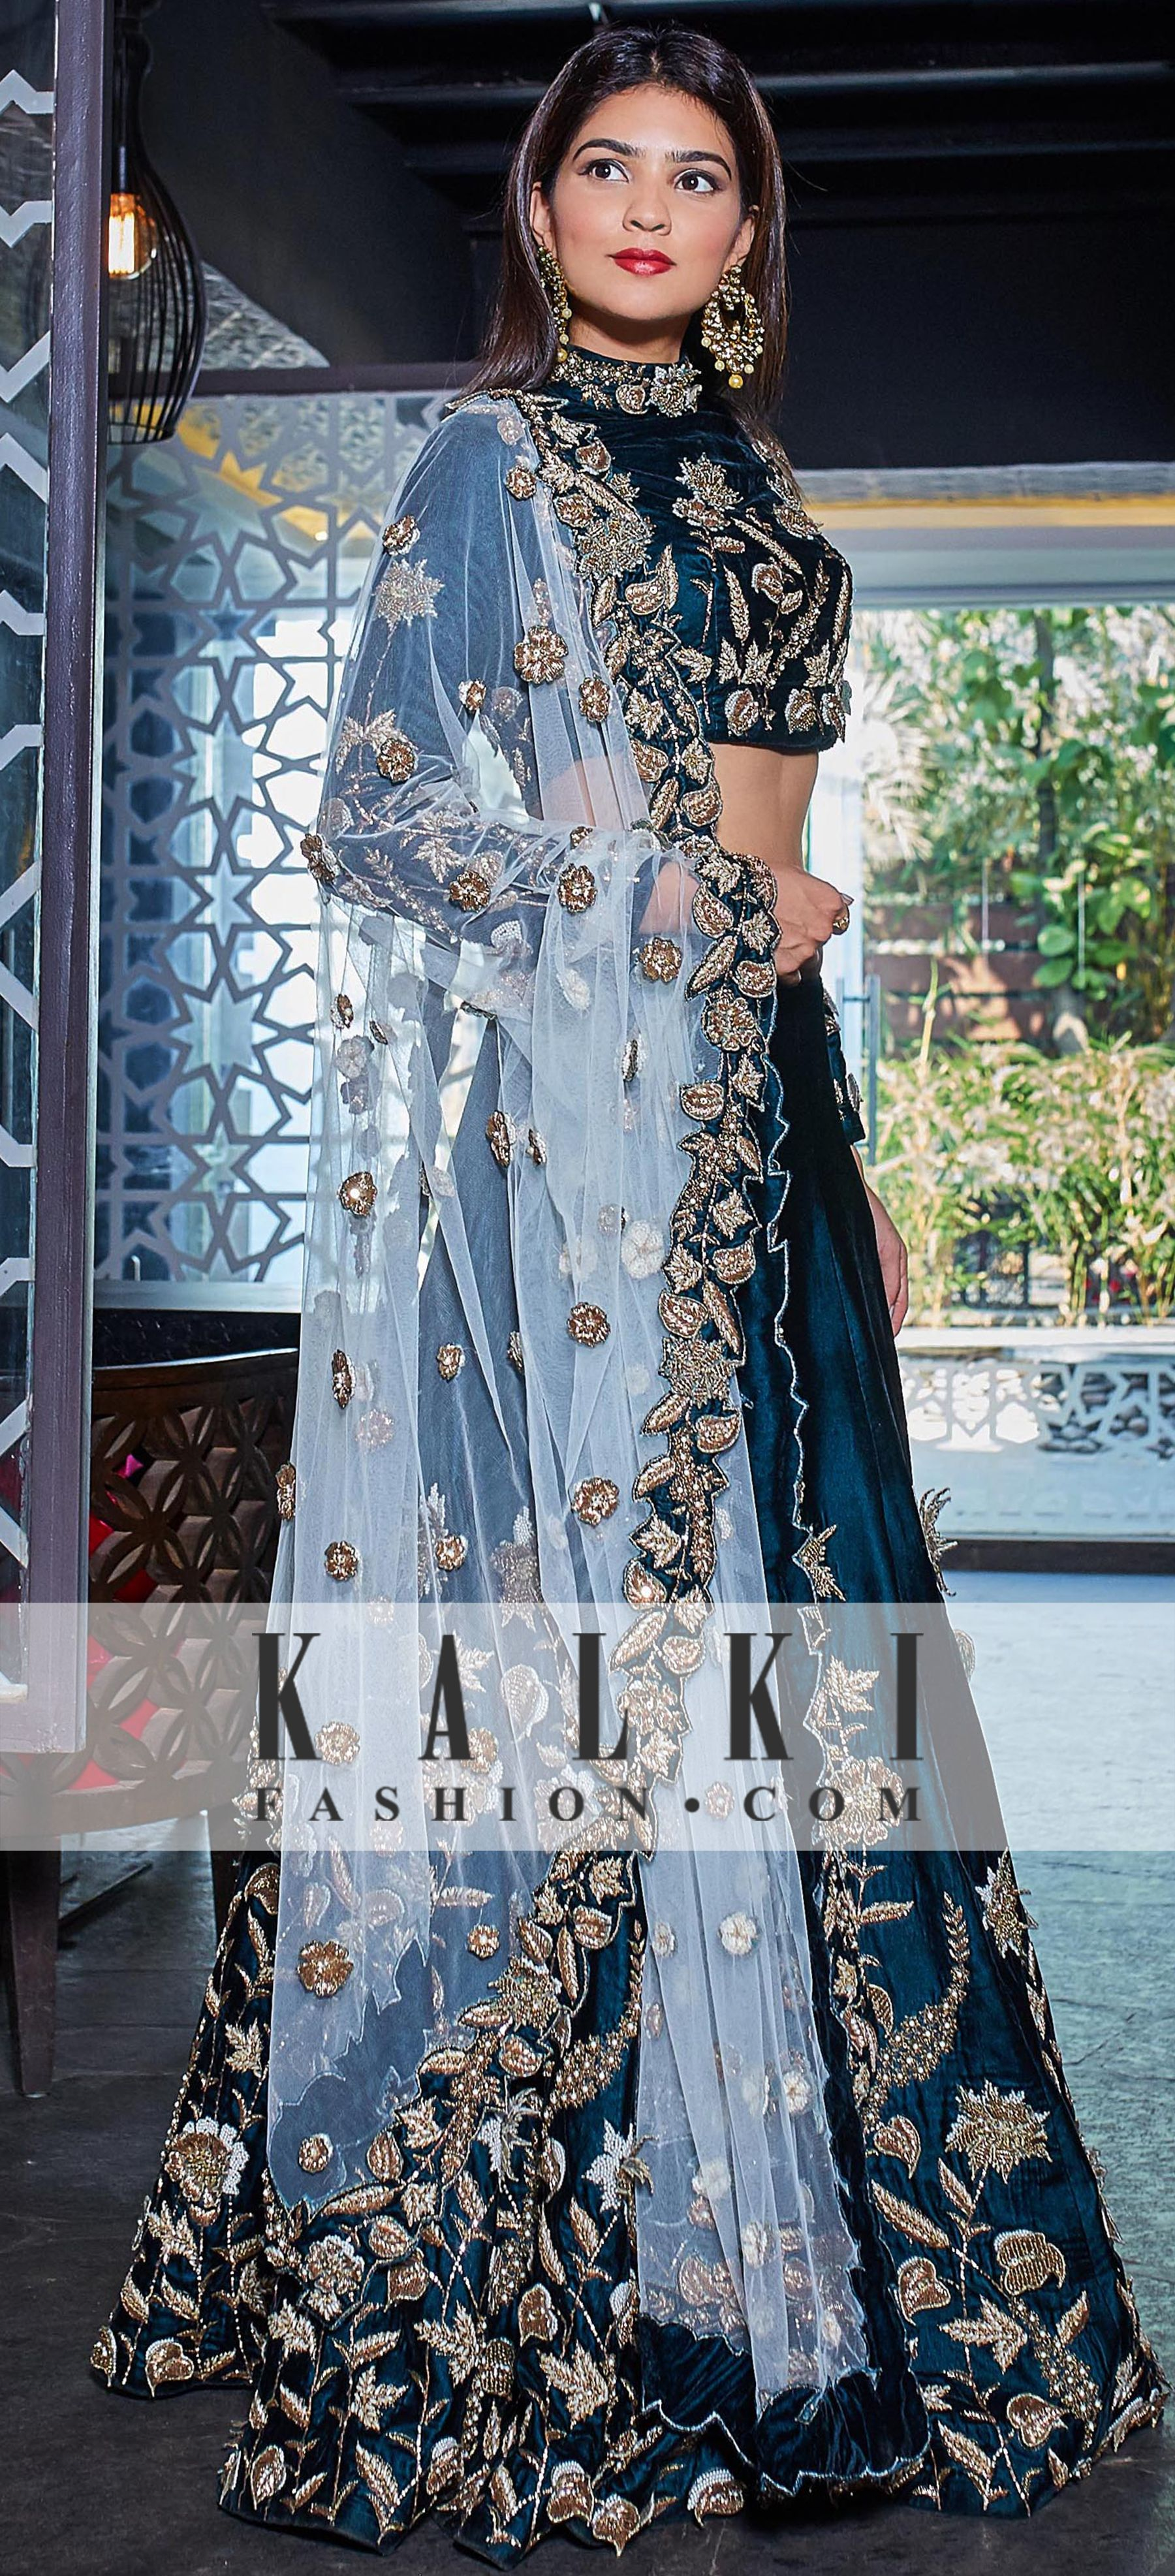 Madhura - Fashion Blogger | KALKI Celebrity Favourite Styles ...